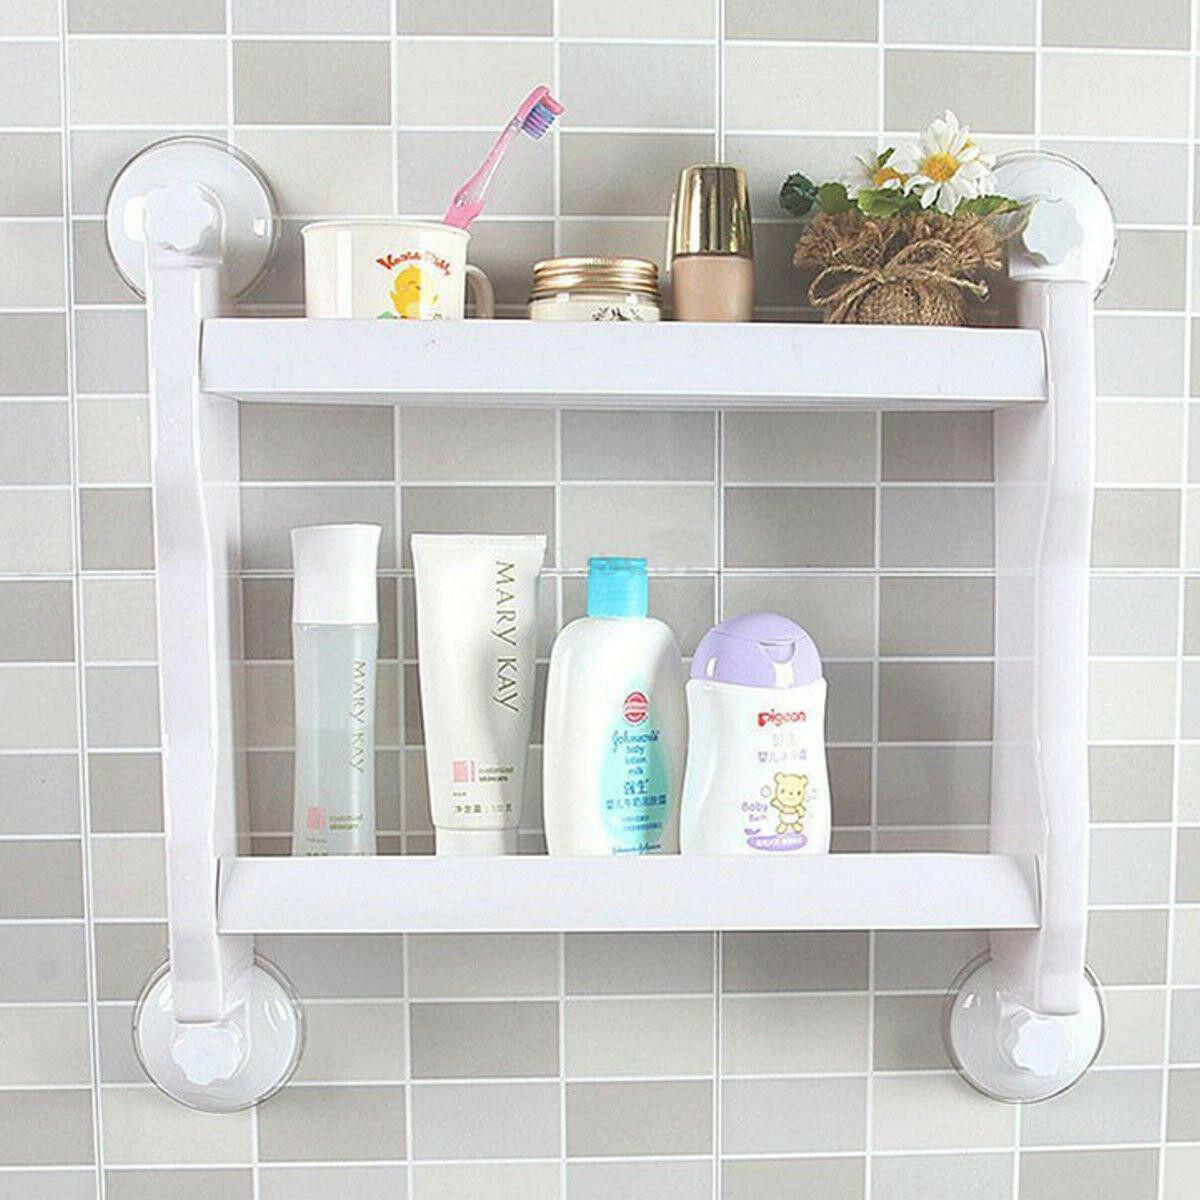 NEW BATHROOM KITCHEN Corner Storage Rack Organizer Shower Shelf ...